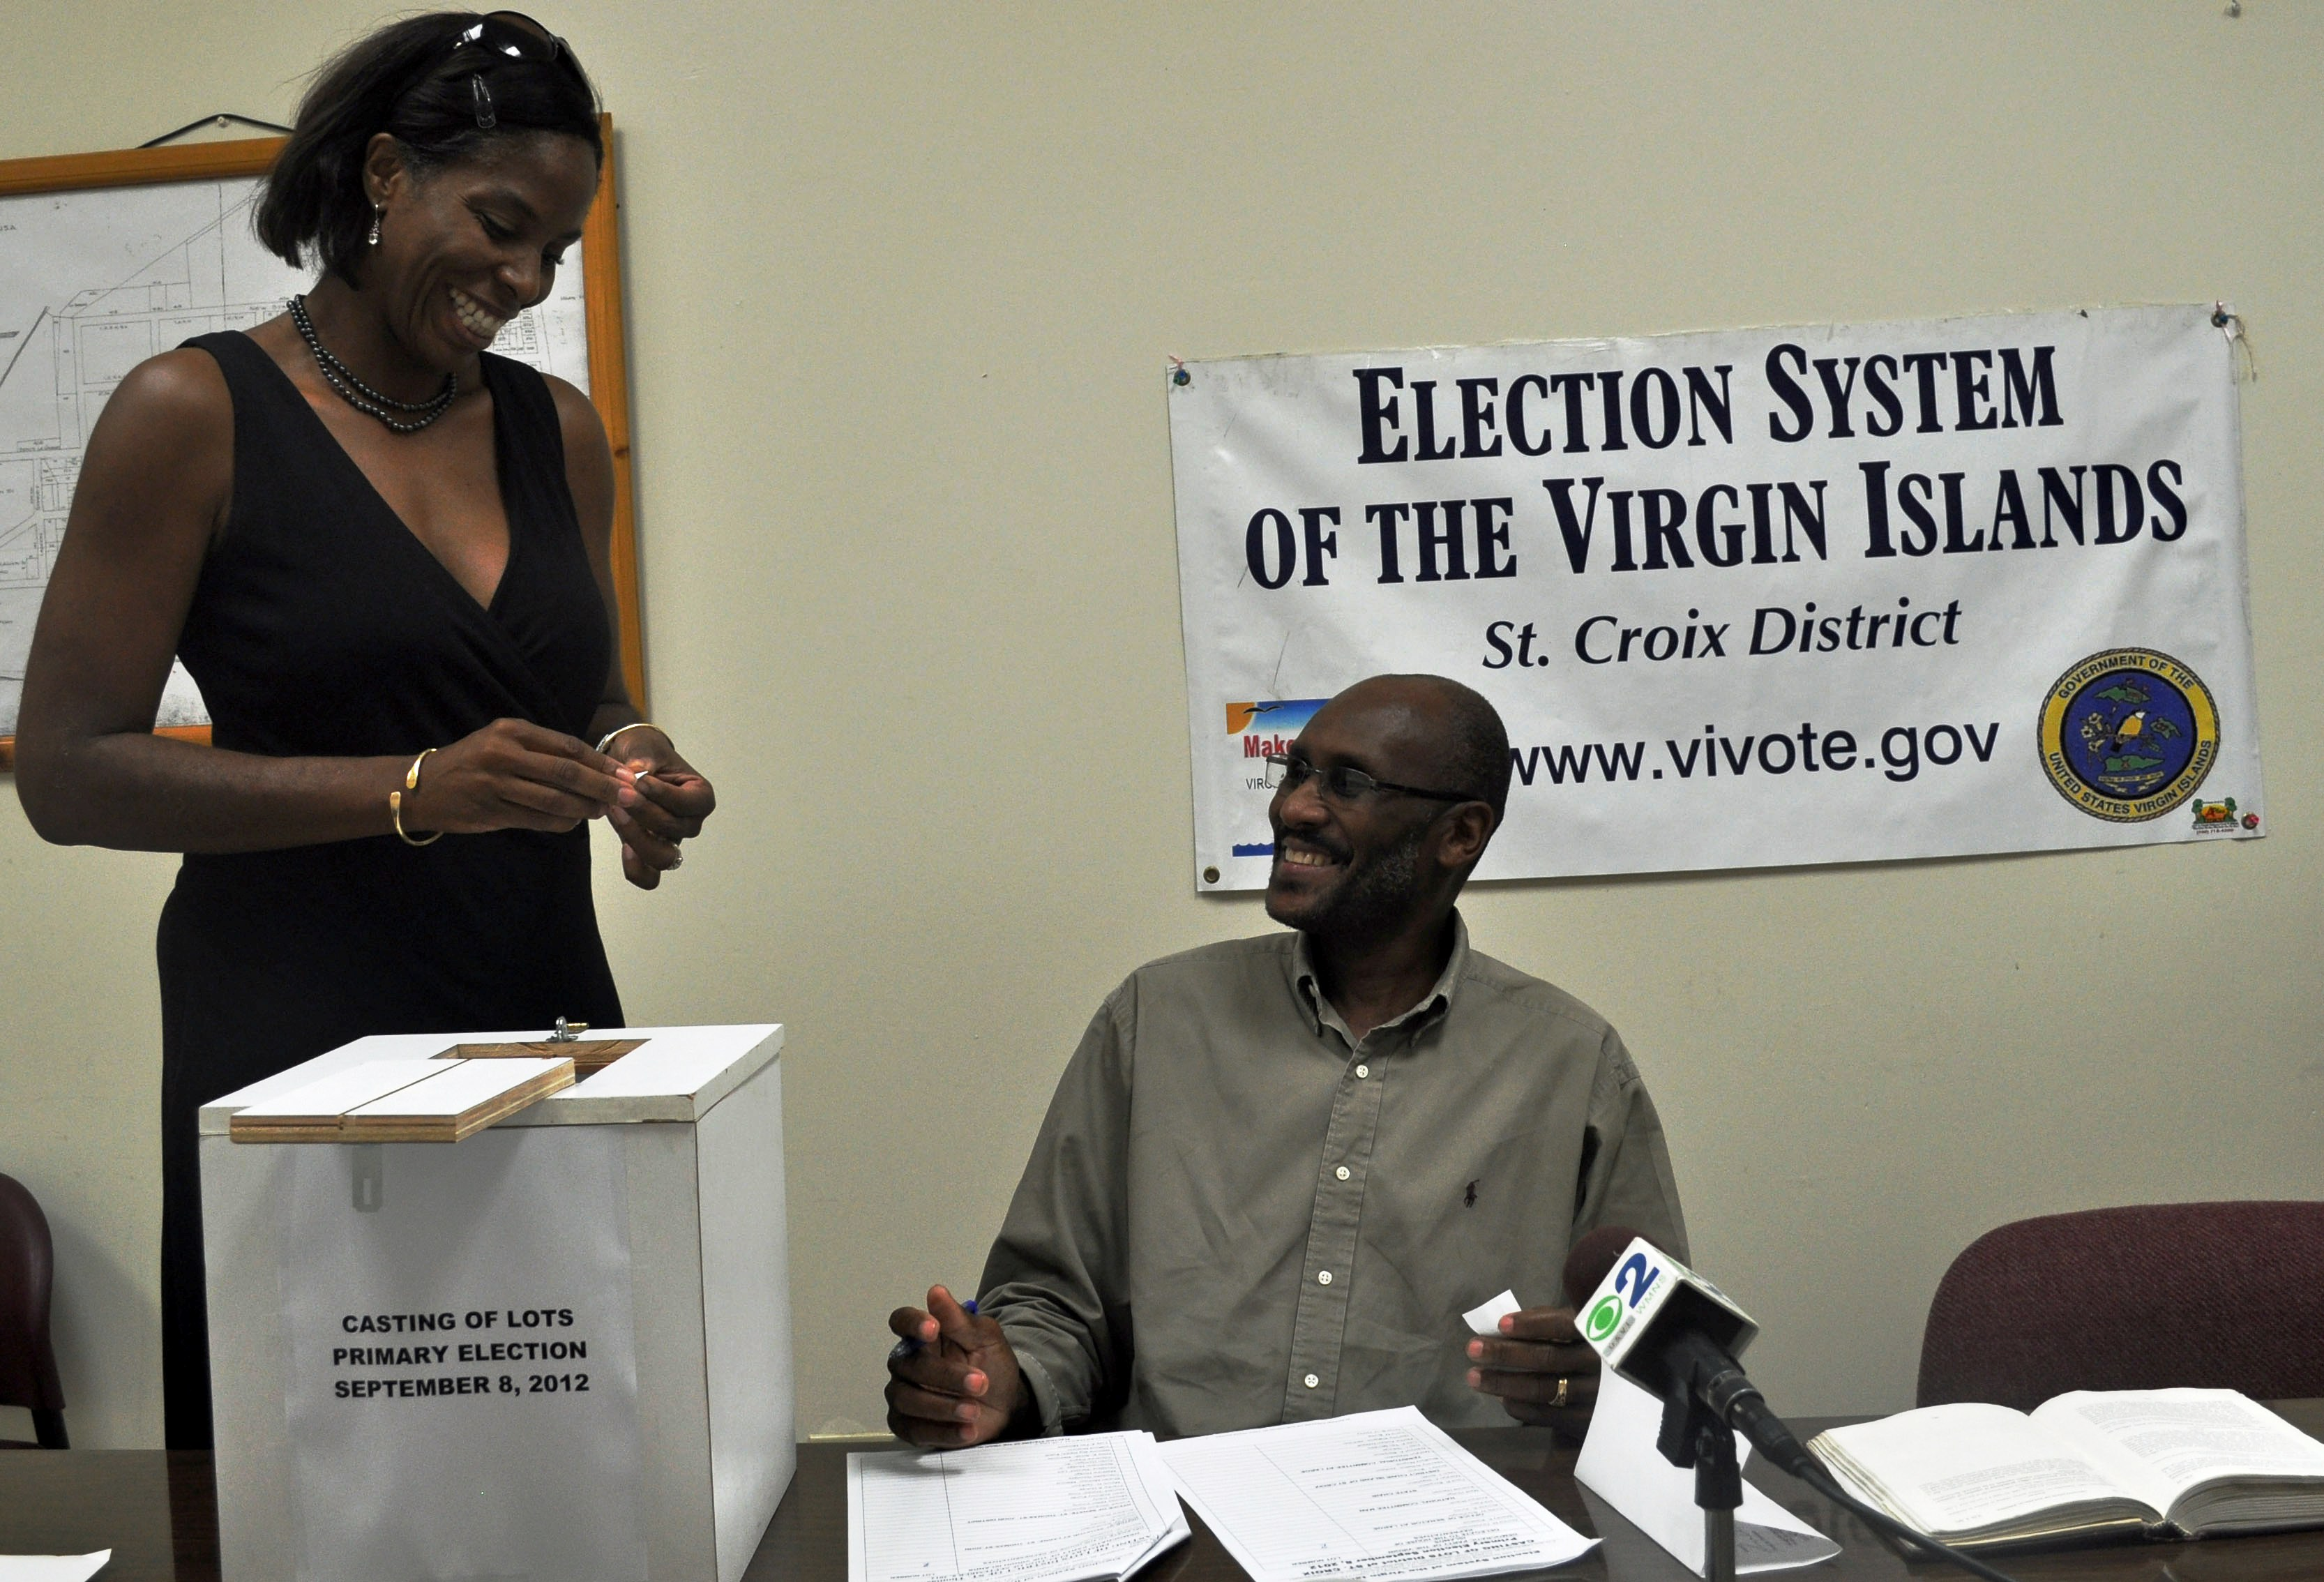 Stacey E. Plaskett , Democratic candidate for delegate to the U.S. House of Representatives, reaches into the box Tuesday during the casting of lots on St. Croix as Supervisor of Elections John Abramson Jr. awaits her number.